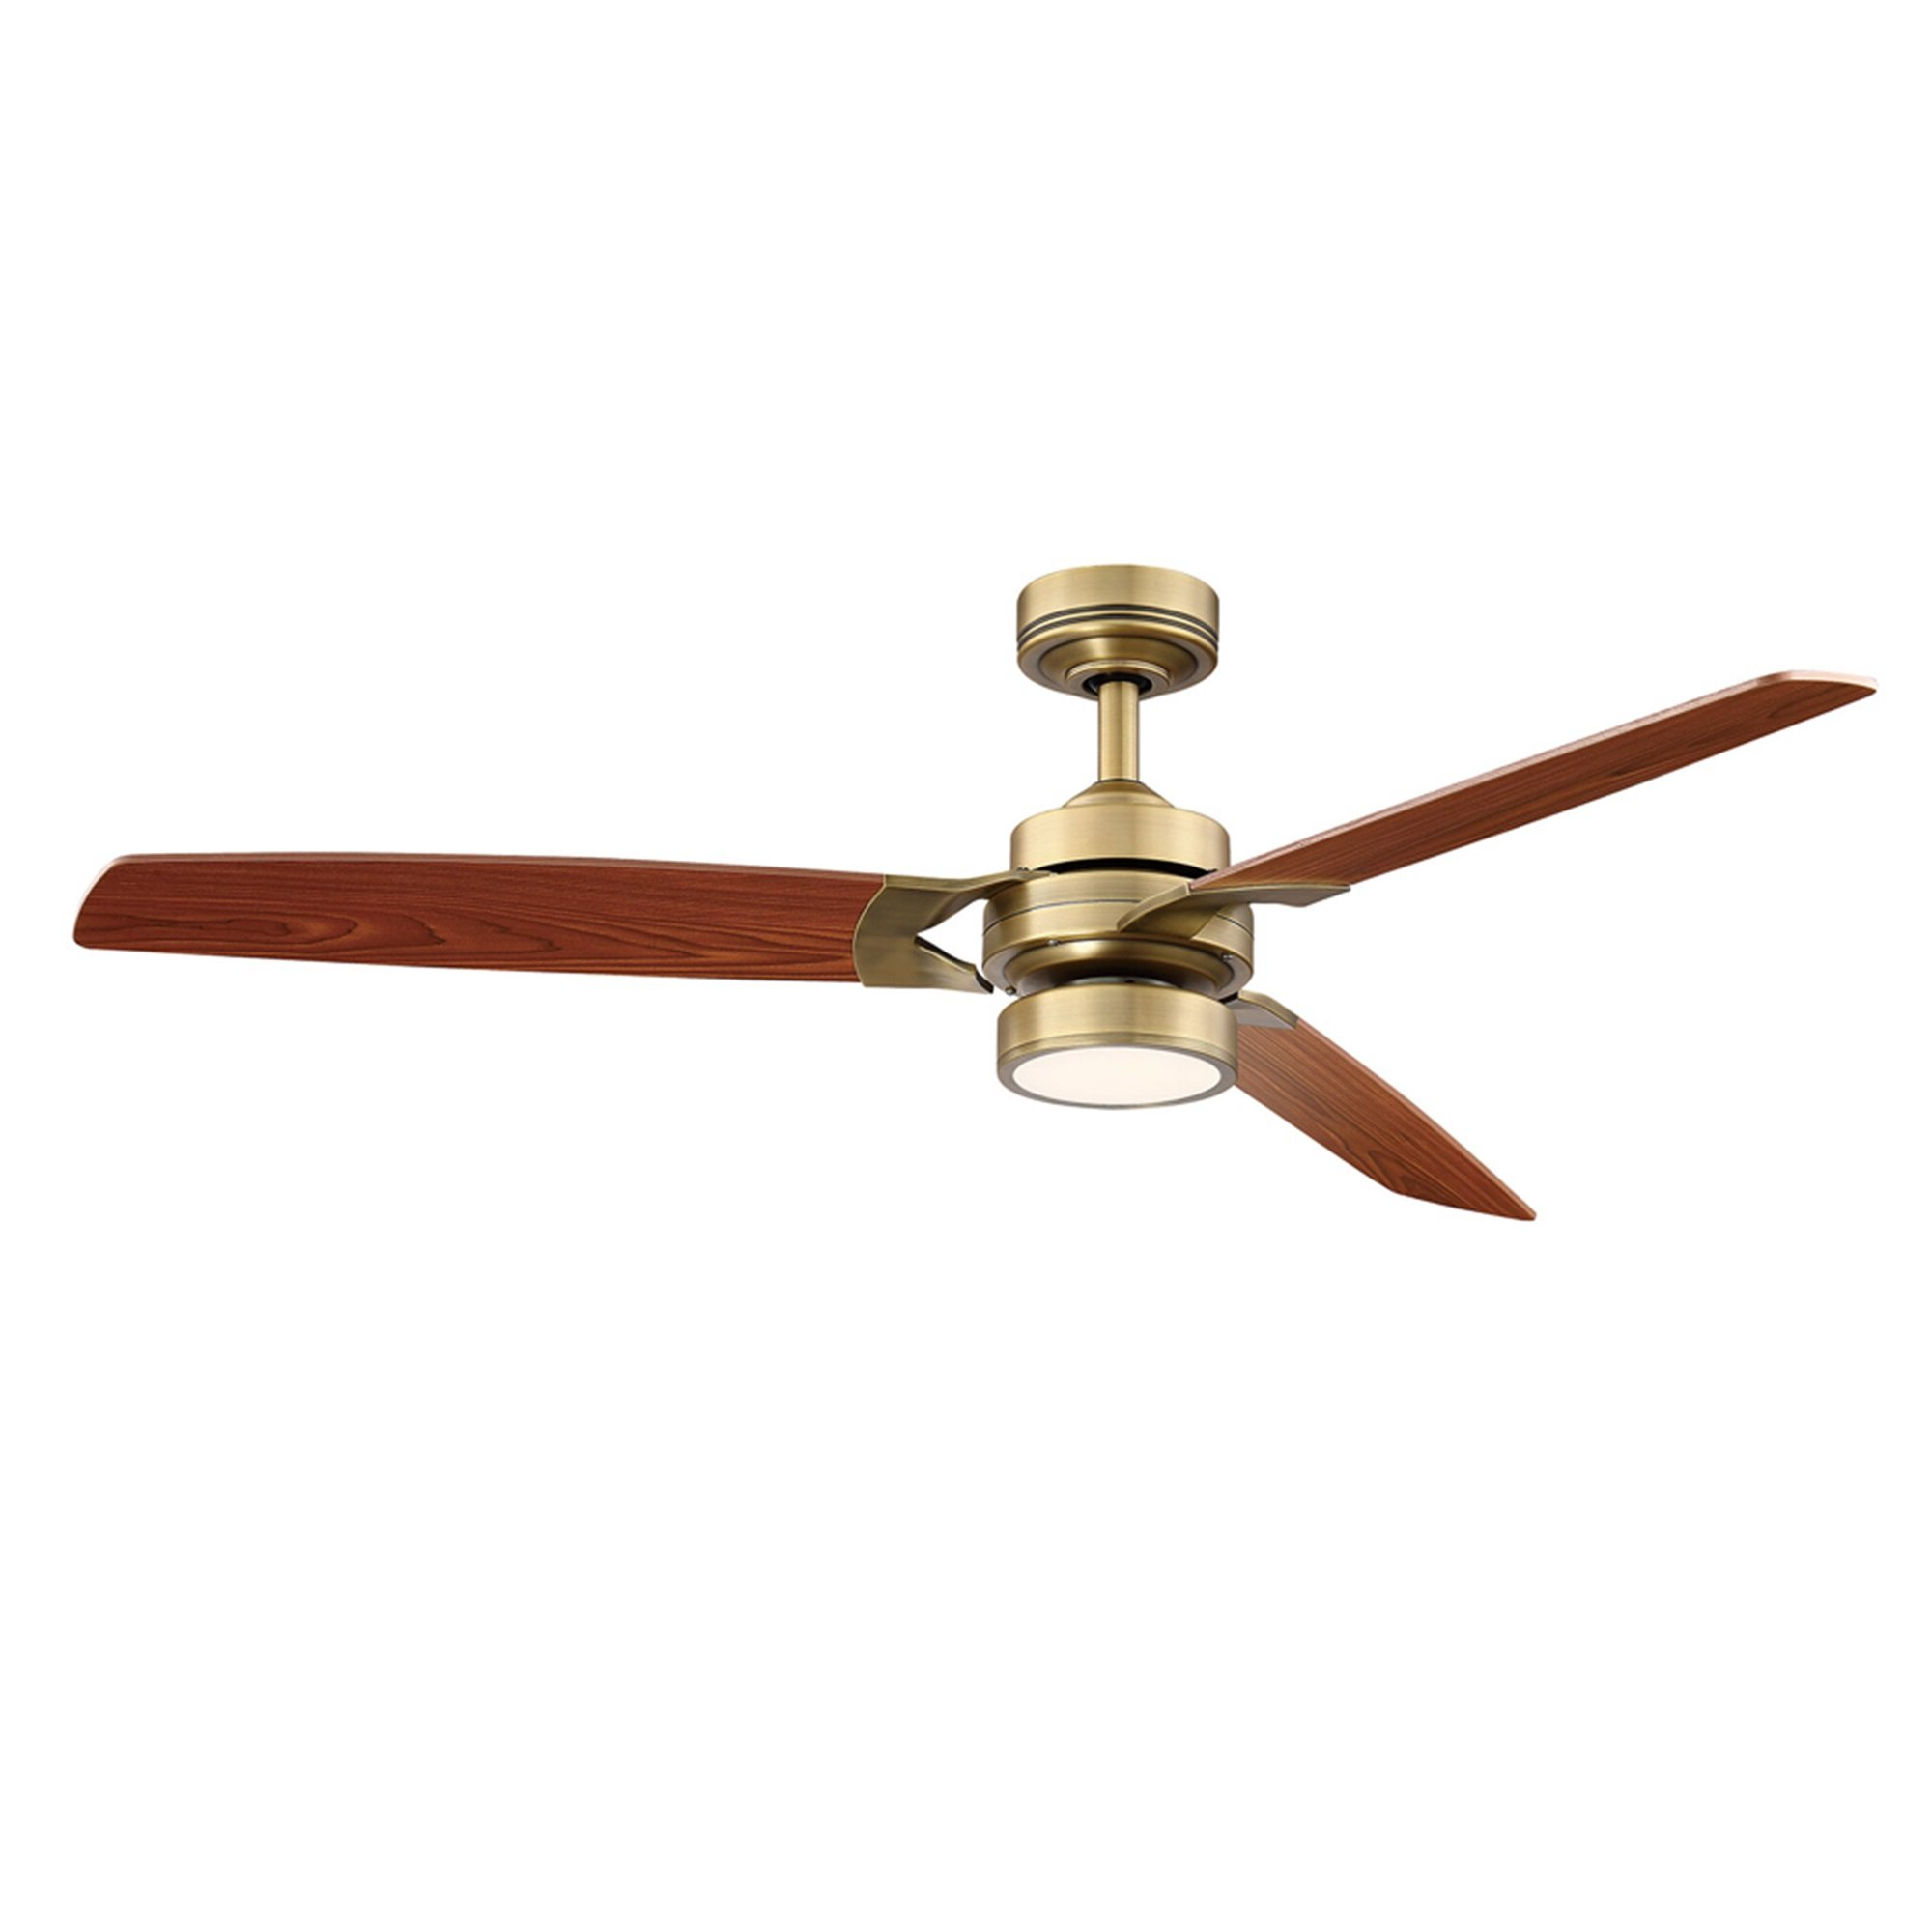 Gaye 3 Blade Led Ceiling Fan With Remote, Light Kit Included Inside Well Known Zonix 3 Blade Ceiling Fans (View 16 of 20)